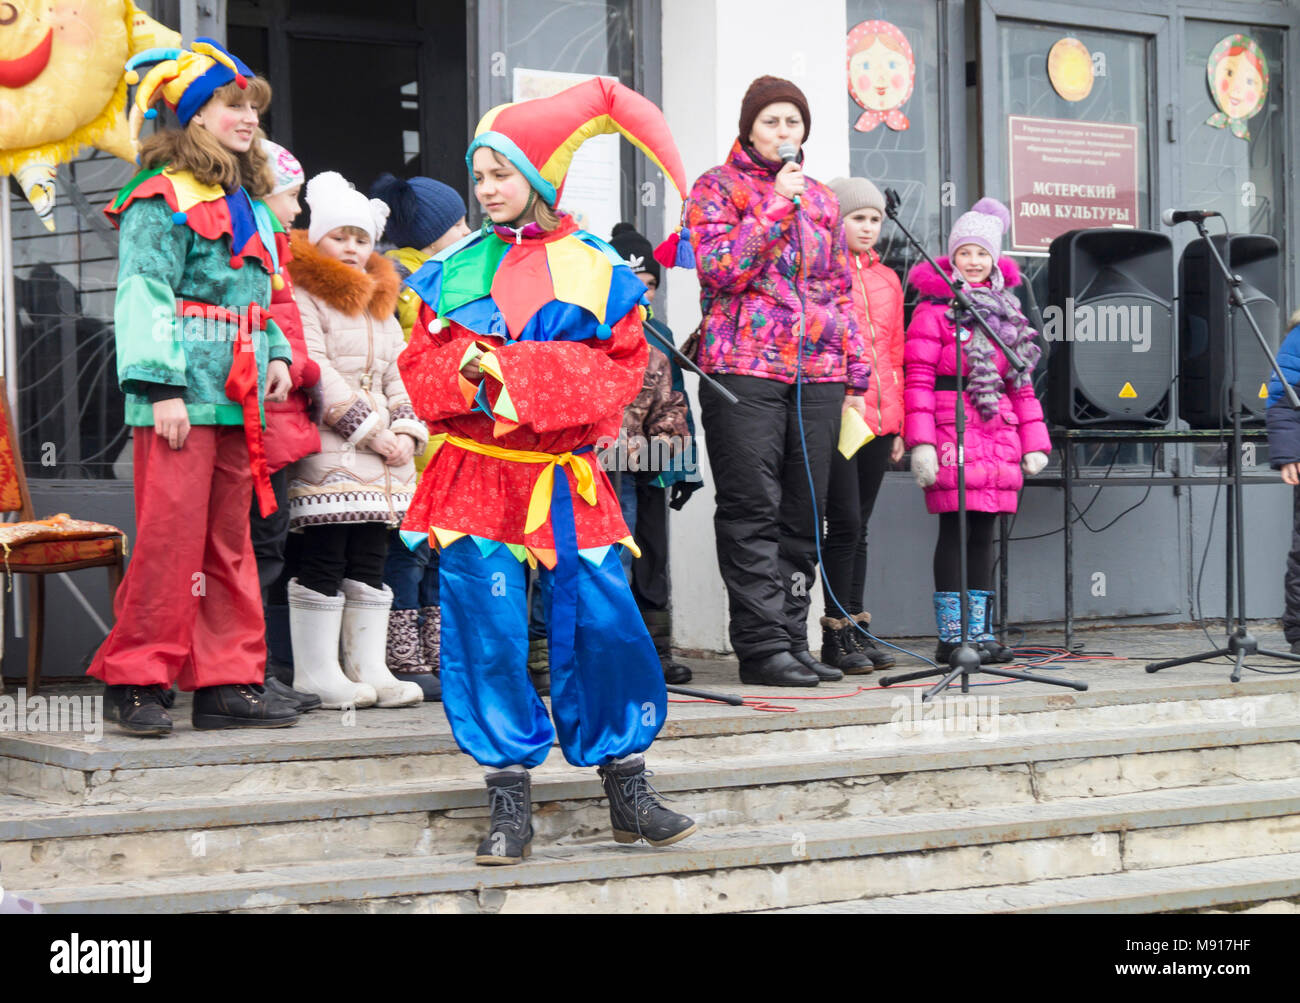 Mstera,Russia-March 13,2016: Appearance actor in colorful gown at festive day of the Shrovetide March 13,2016 in city Mstera,Russia - Stock Image